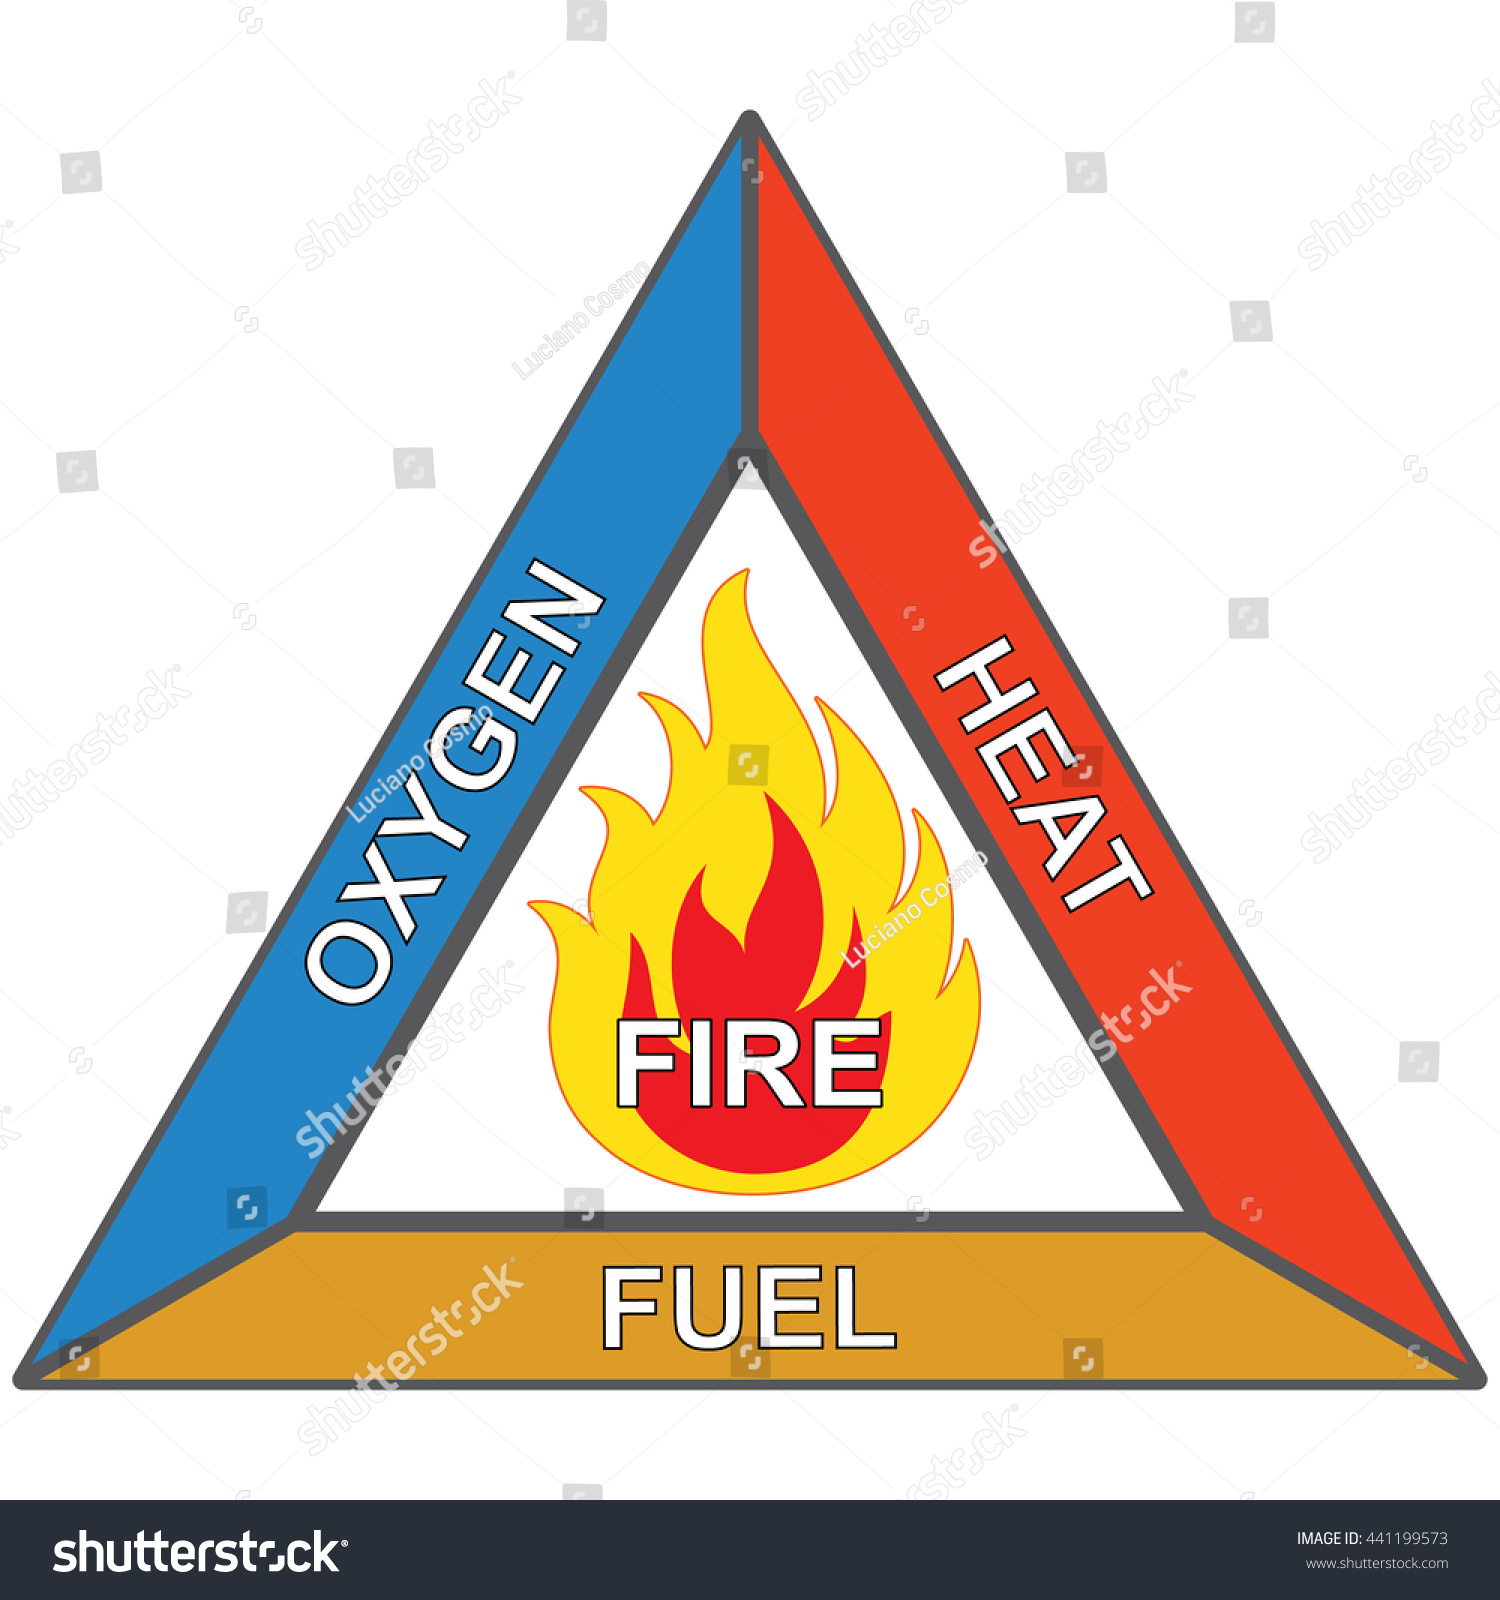 Icons And Signaling Flammable Fire Triangle Oxygen Heat